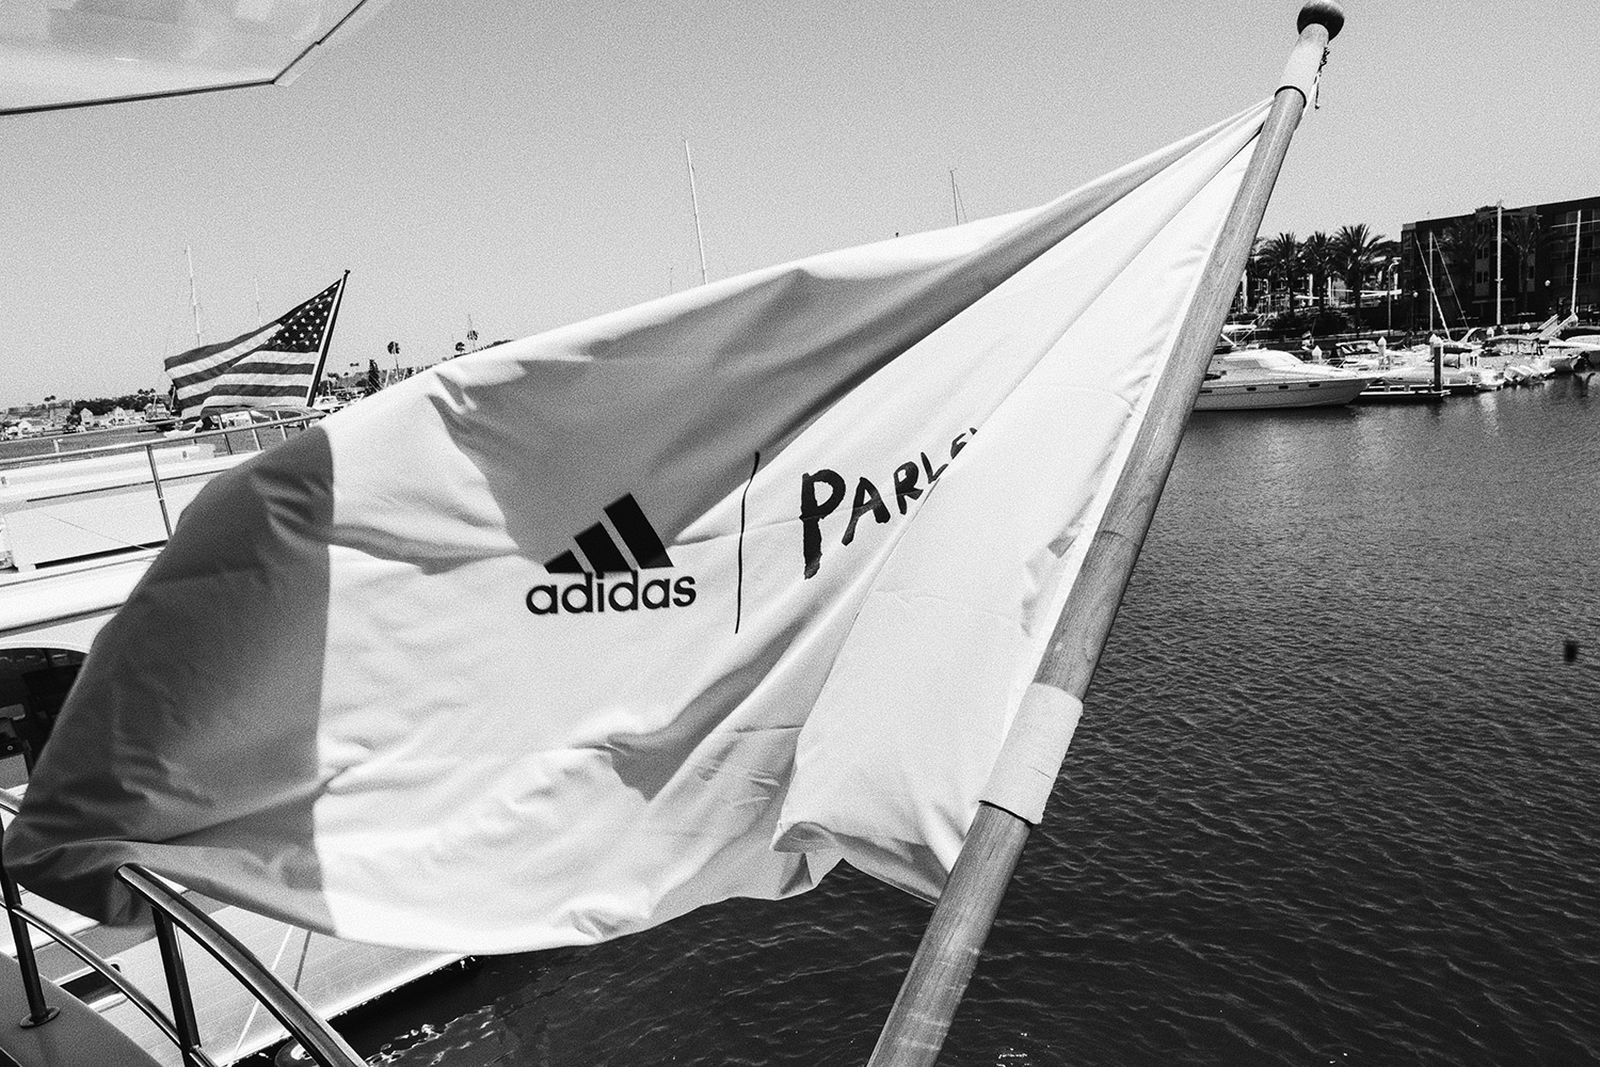 Manchester United Parley Ocean Adidas adidas Parley parley for the oceans